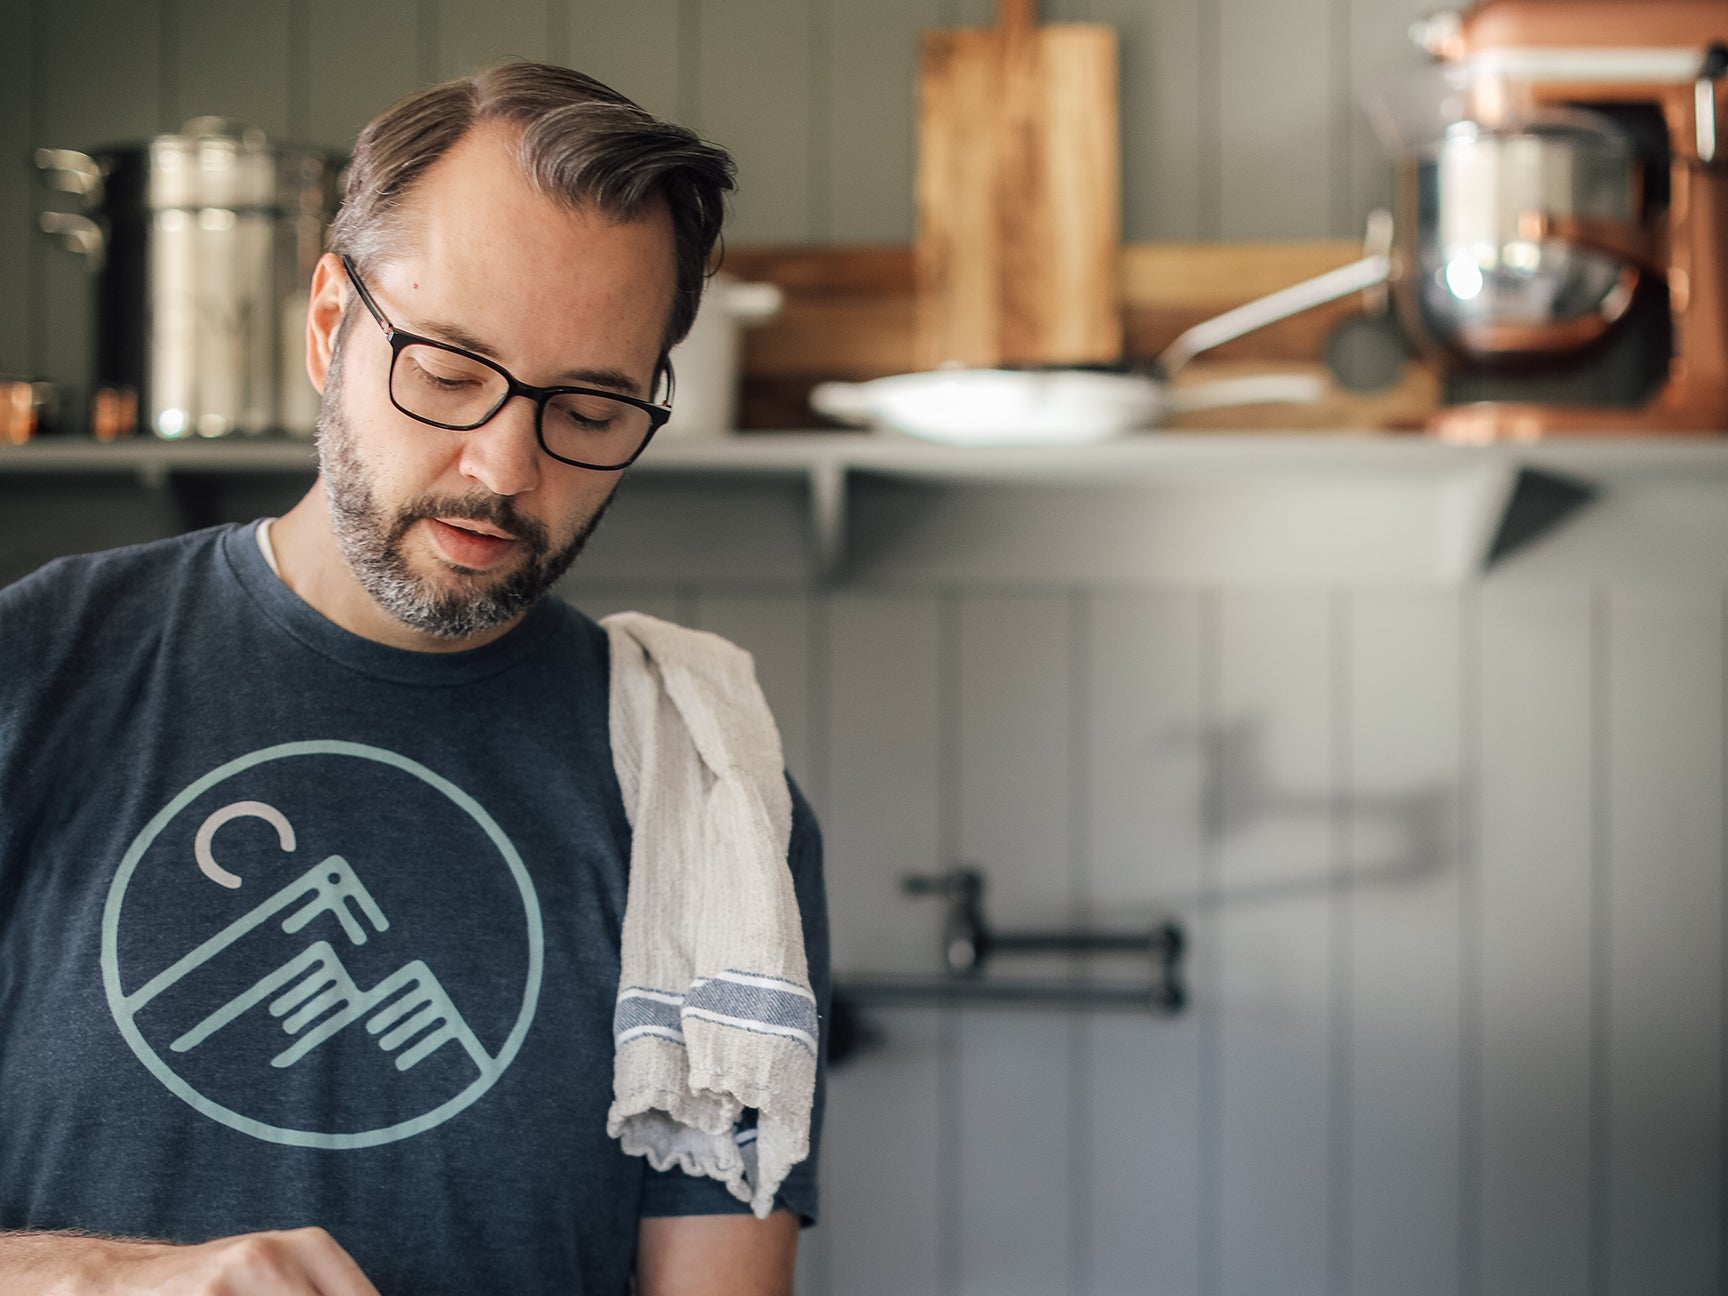 man cooking with a rag on his shoulder